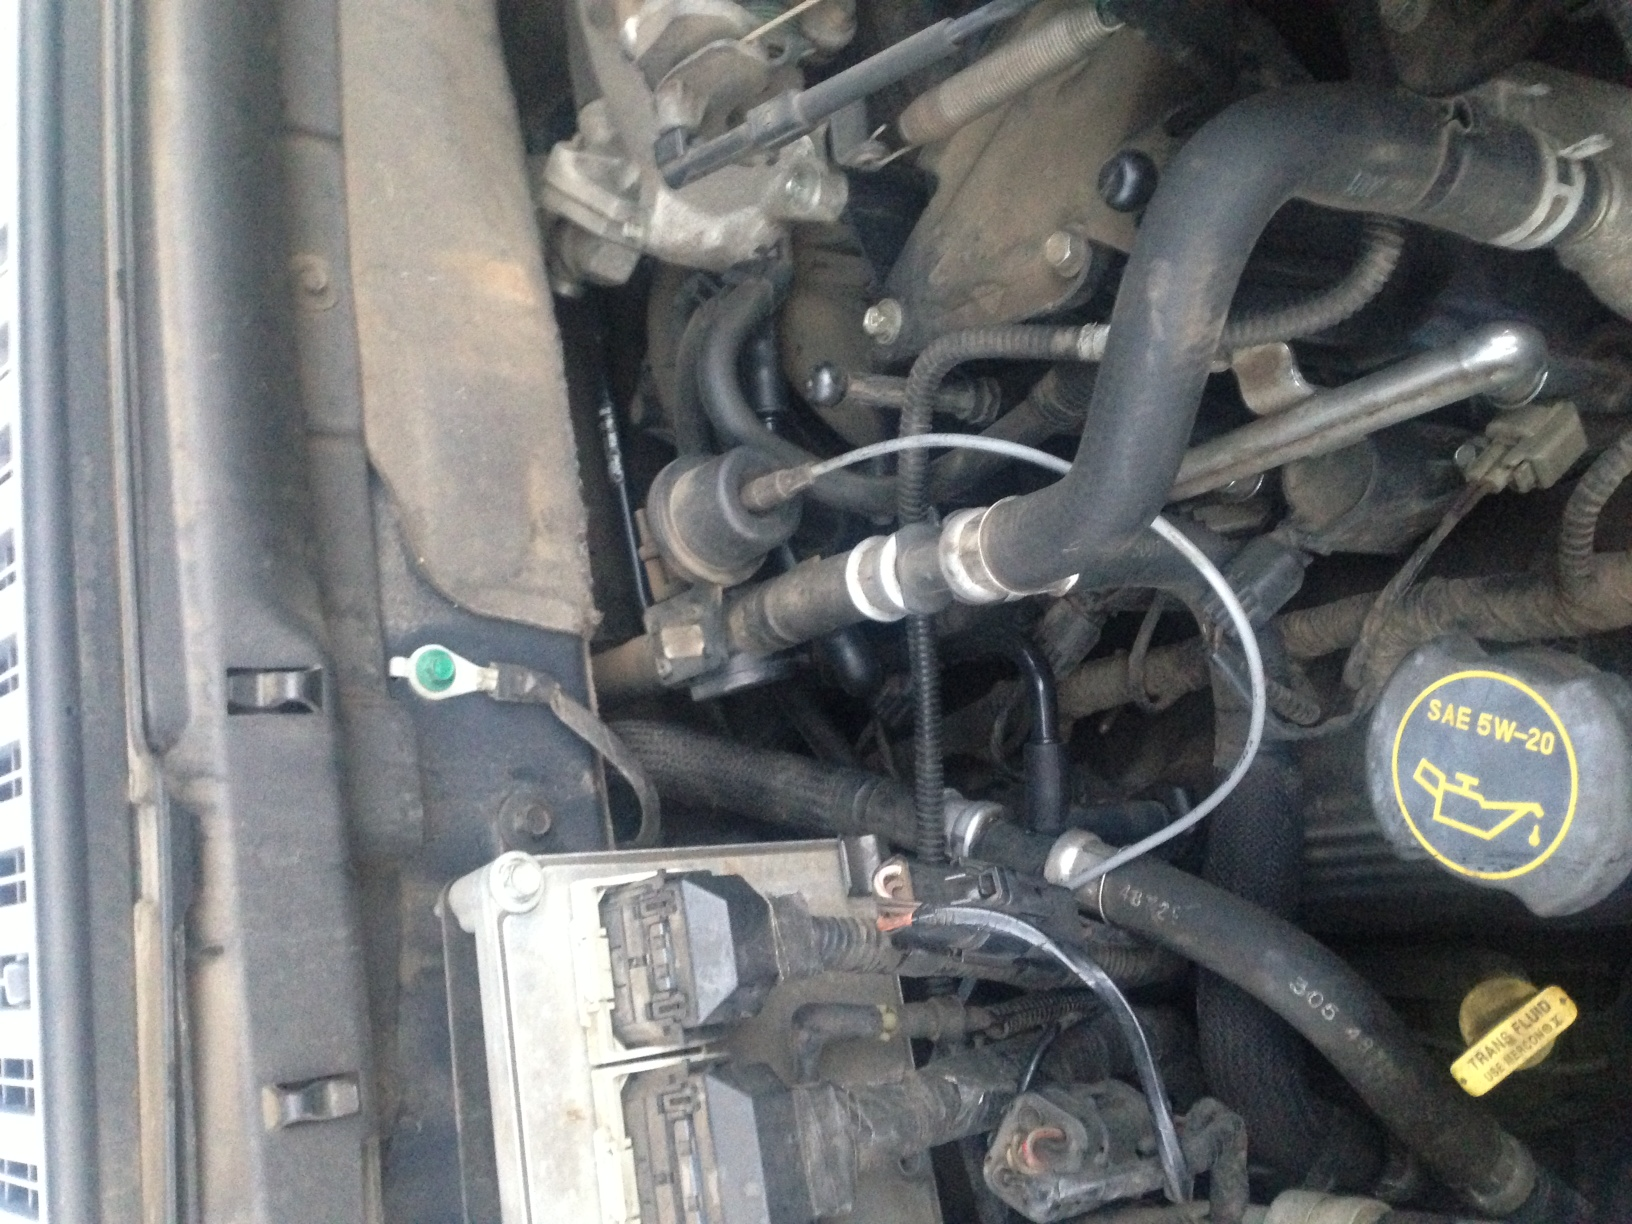 01 Ford Expedition Heater Control Valve Replacement Wiring Diagram 2003 Escape Engine Vacuum Free Image For User Manual Download